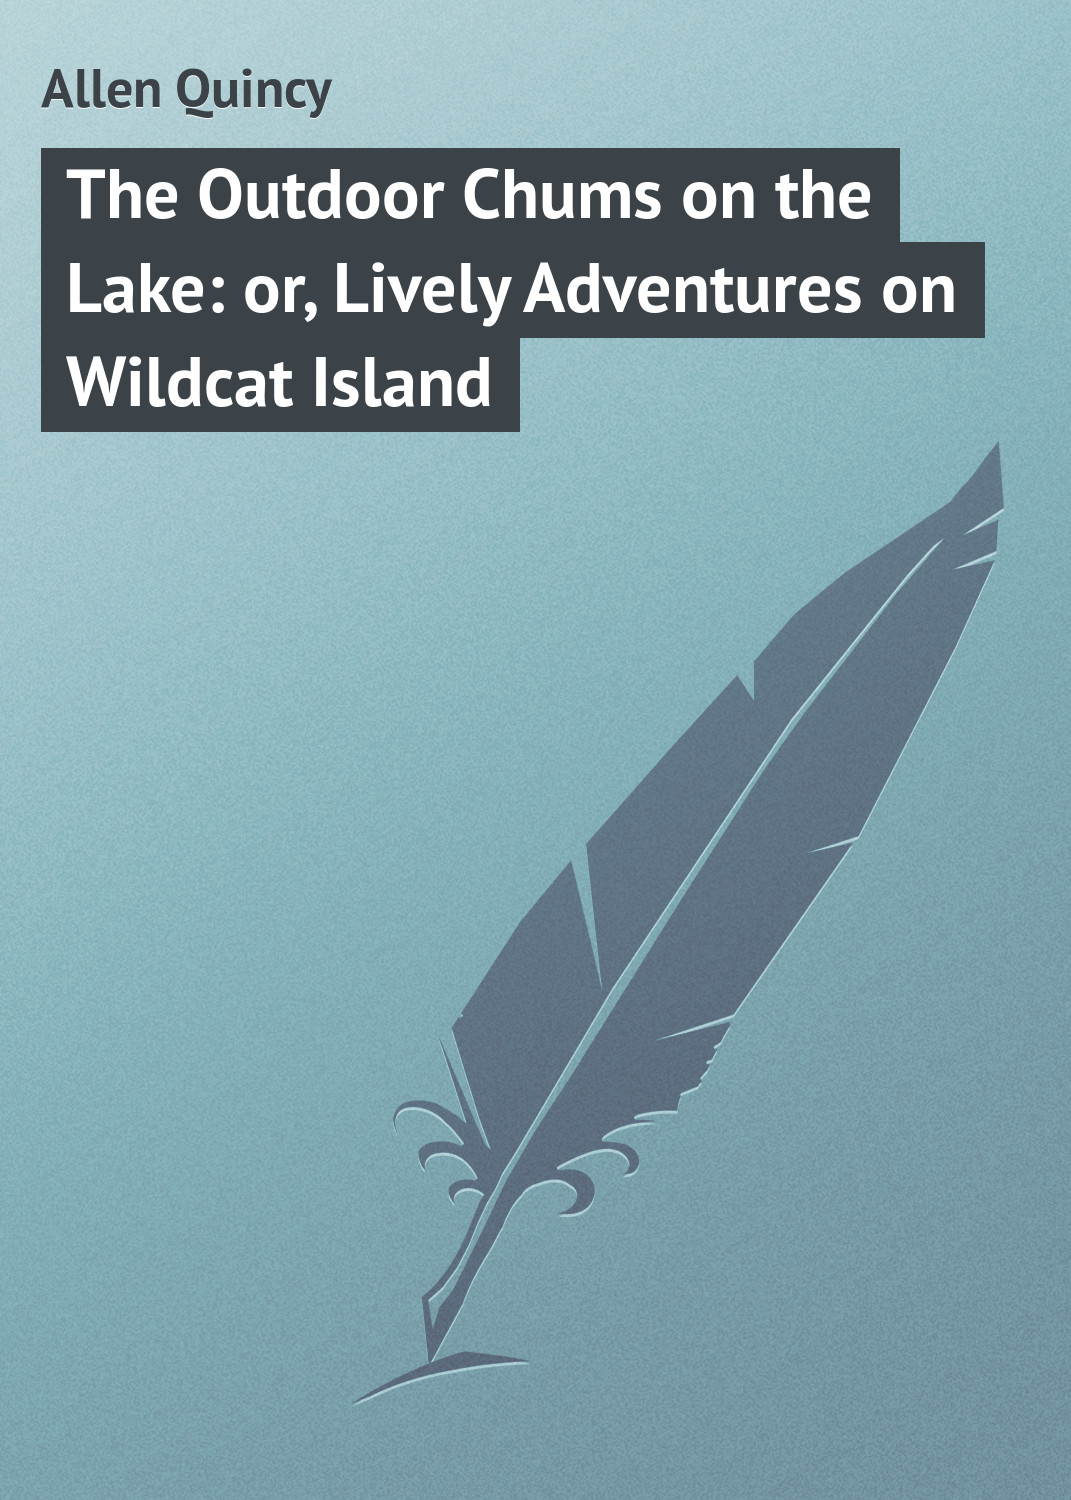 Allen Quincy The Outdoor Chums on the Lake: or, Lively Adventures on Wildcat Island обогреватель stiebel eltron cns 250 s